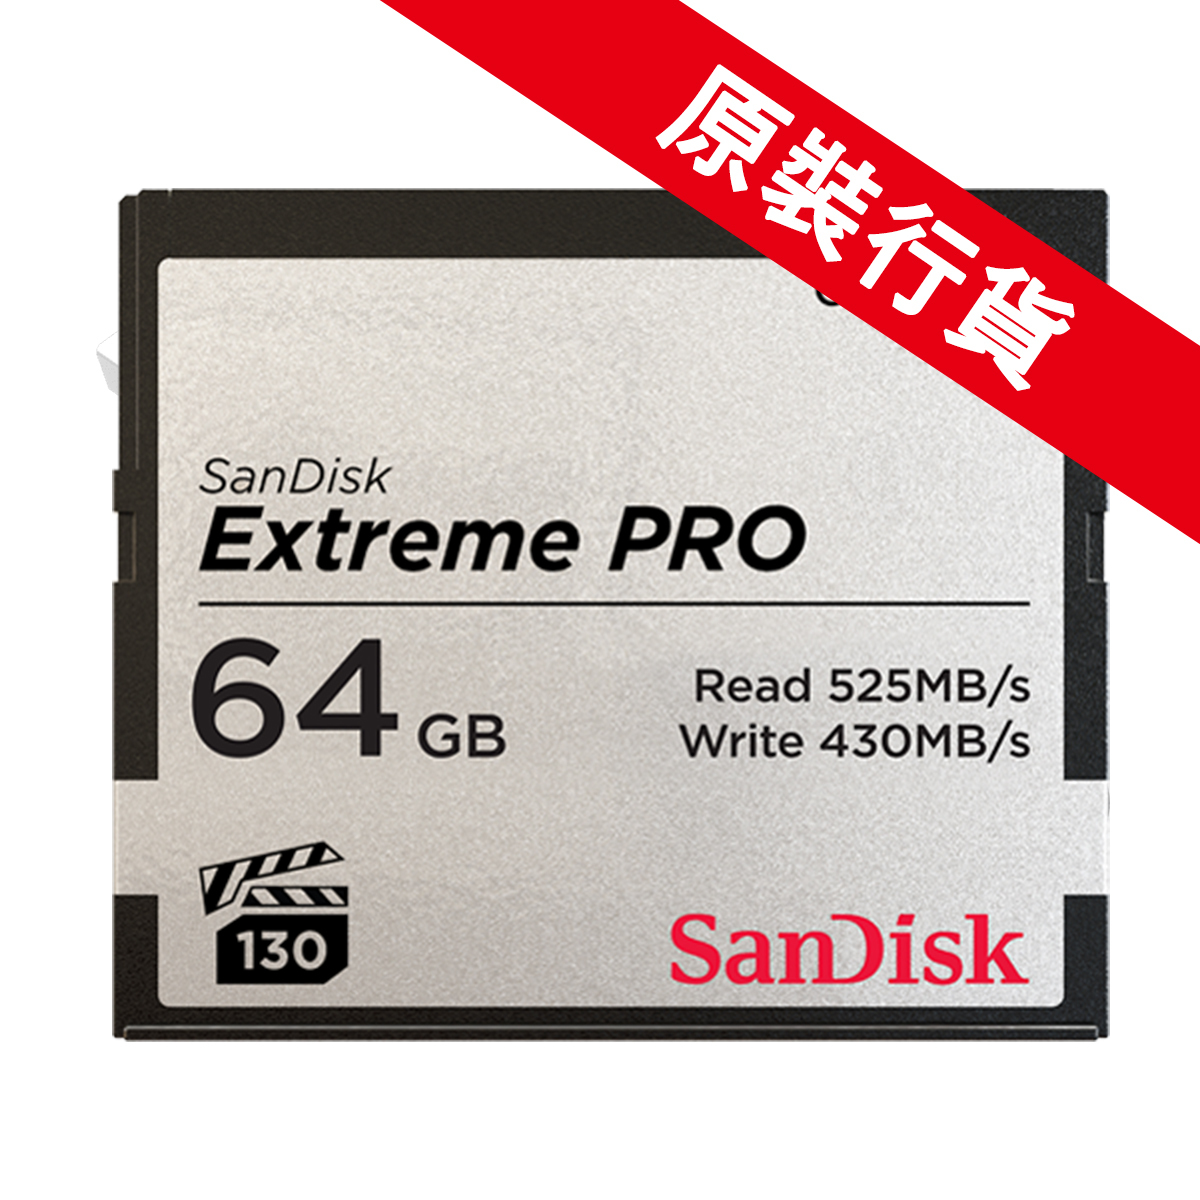 Sandisk 64gb Extreme Pro Cfast20 Memory Card Hktvmall Online